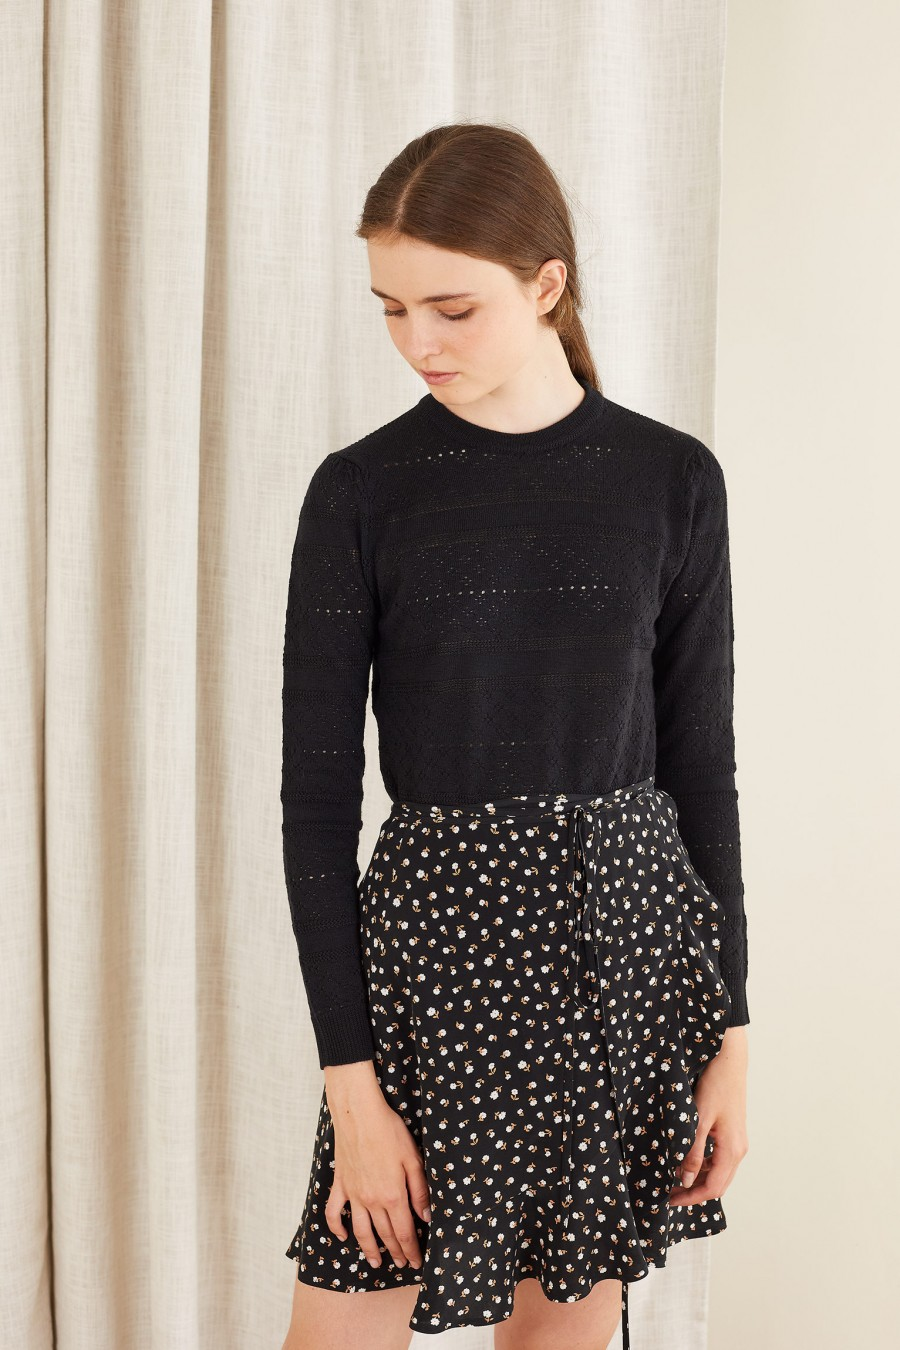 wrap skirt with white flowers on black